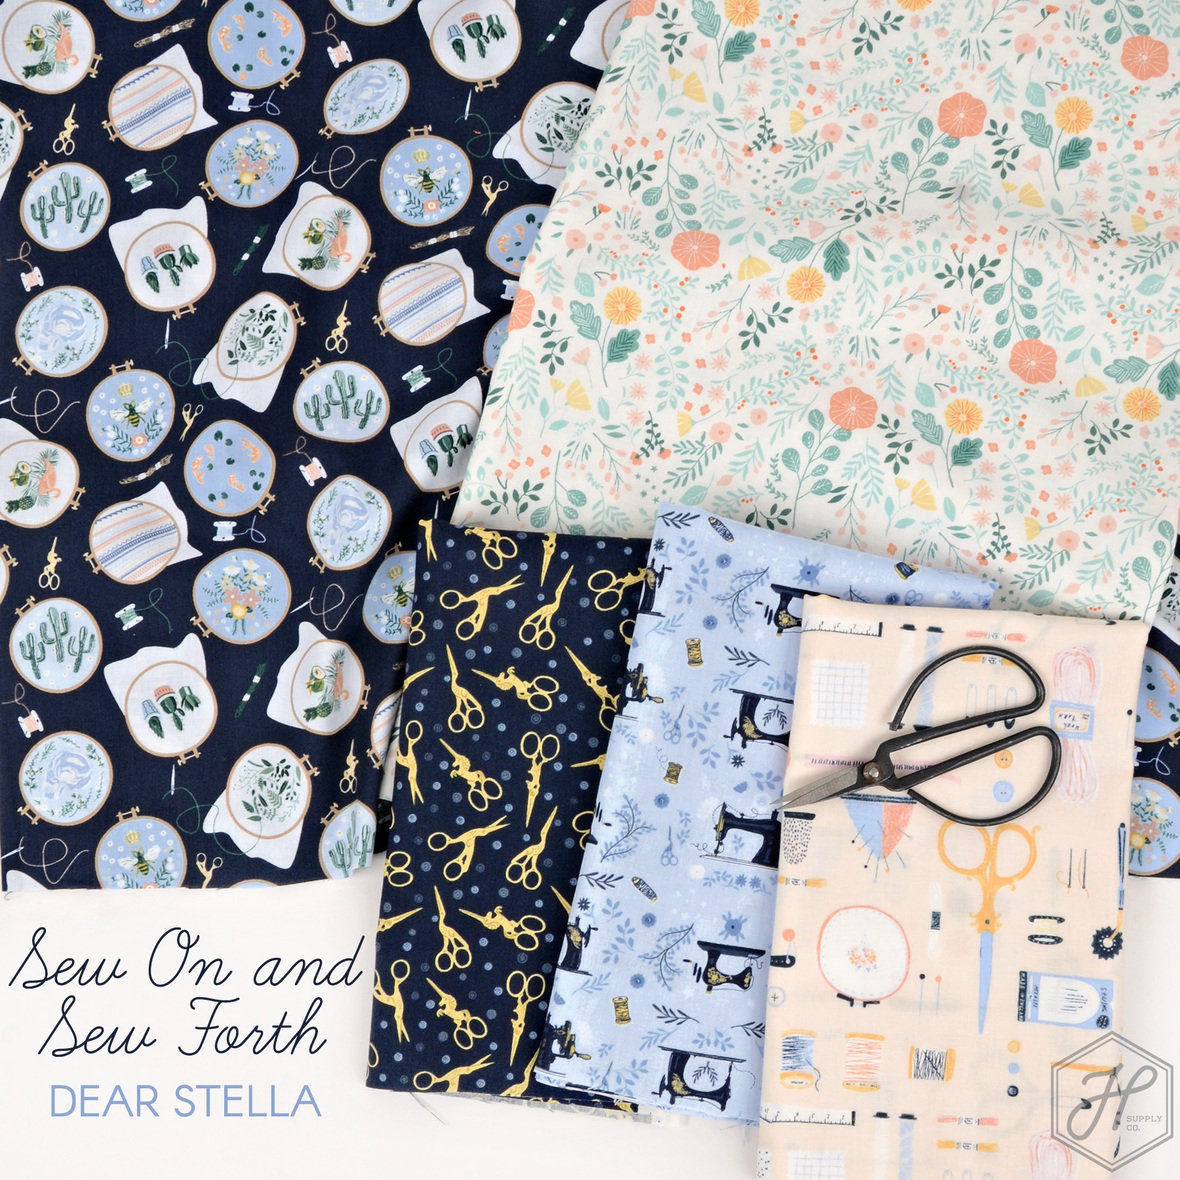 Sew-On-and-Sew-Forth-Fabric-Dear-Stella-at-Hawthorne-Supply-Co